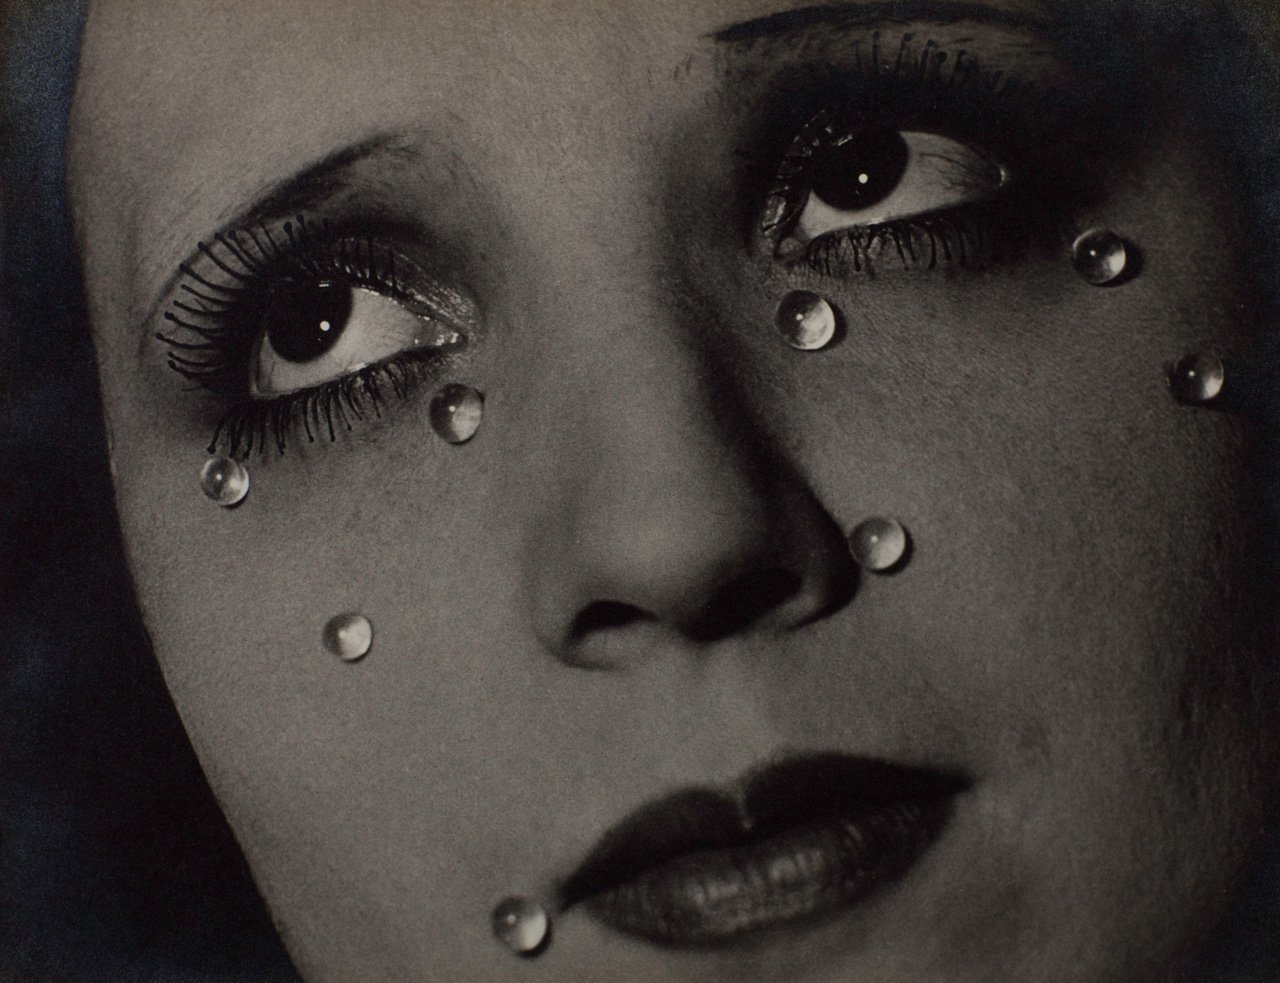 Man Ray, Glass Tears, Gelatin silver print. © Man Ray Trust/ADAGP, Paris and DACS, London